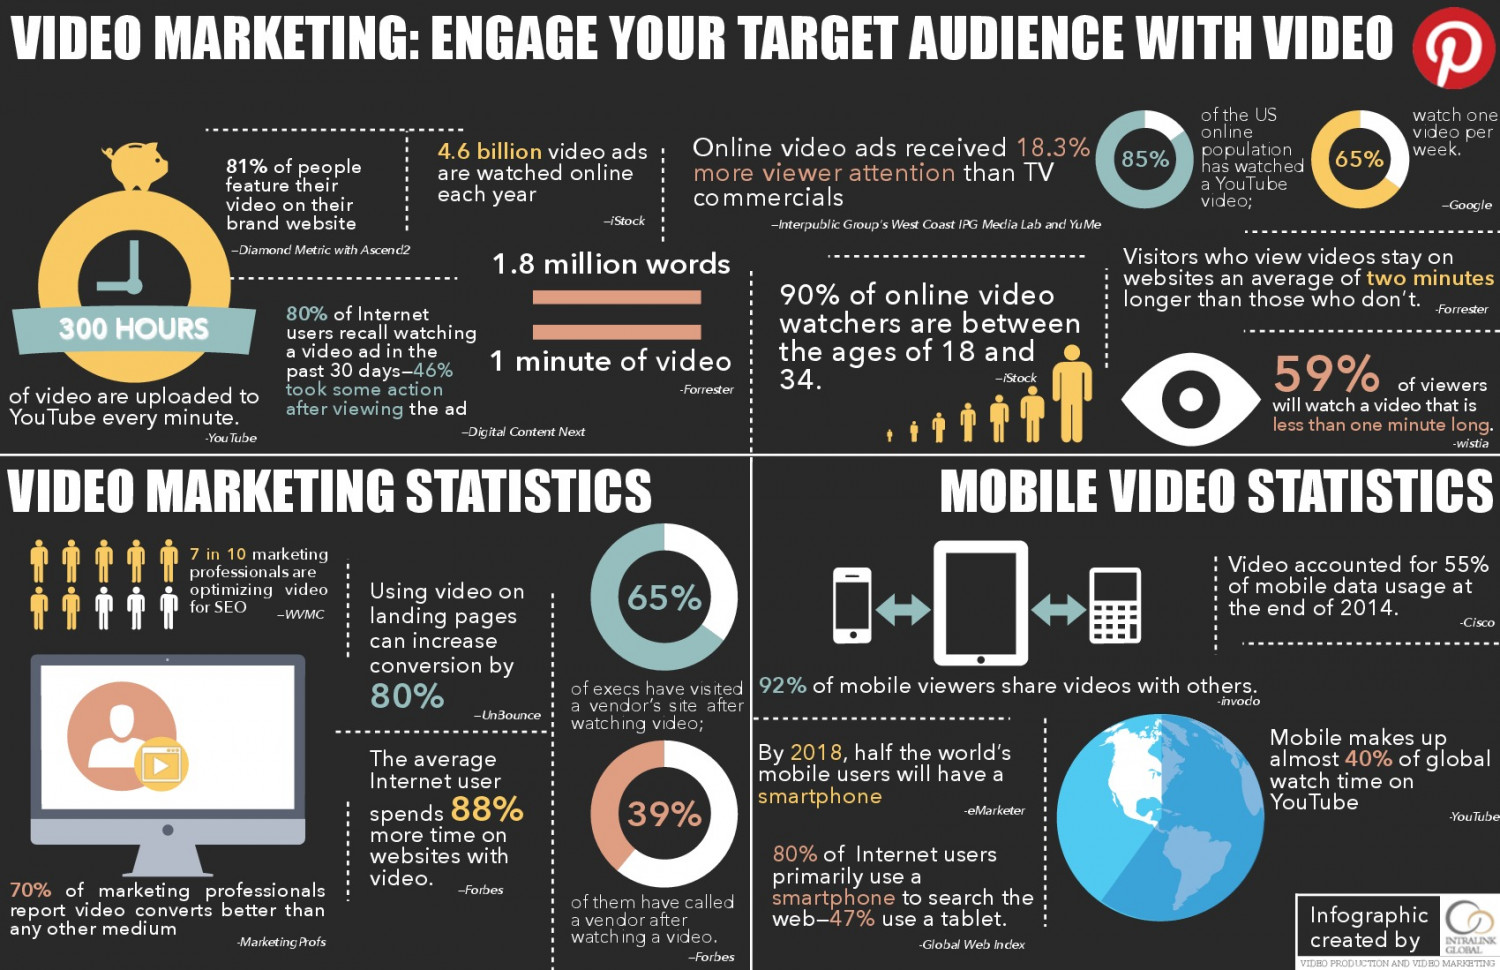 Video Marketing: Engage Your Target Audience with Video Infographic